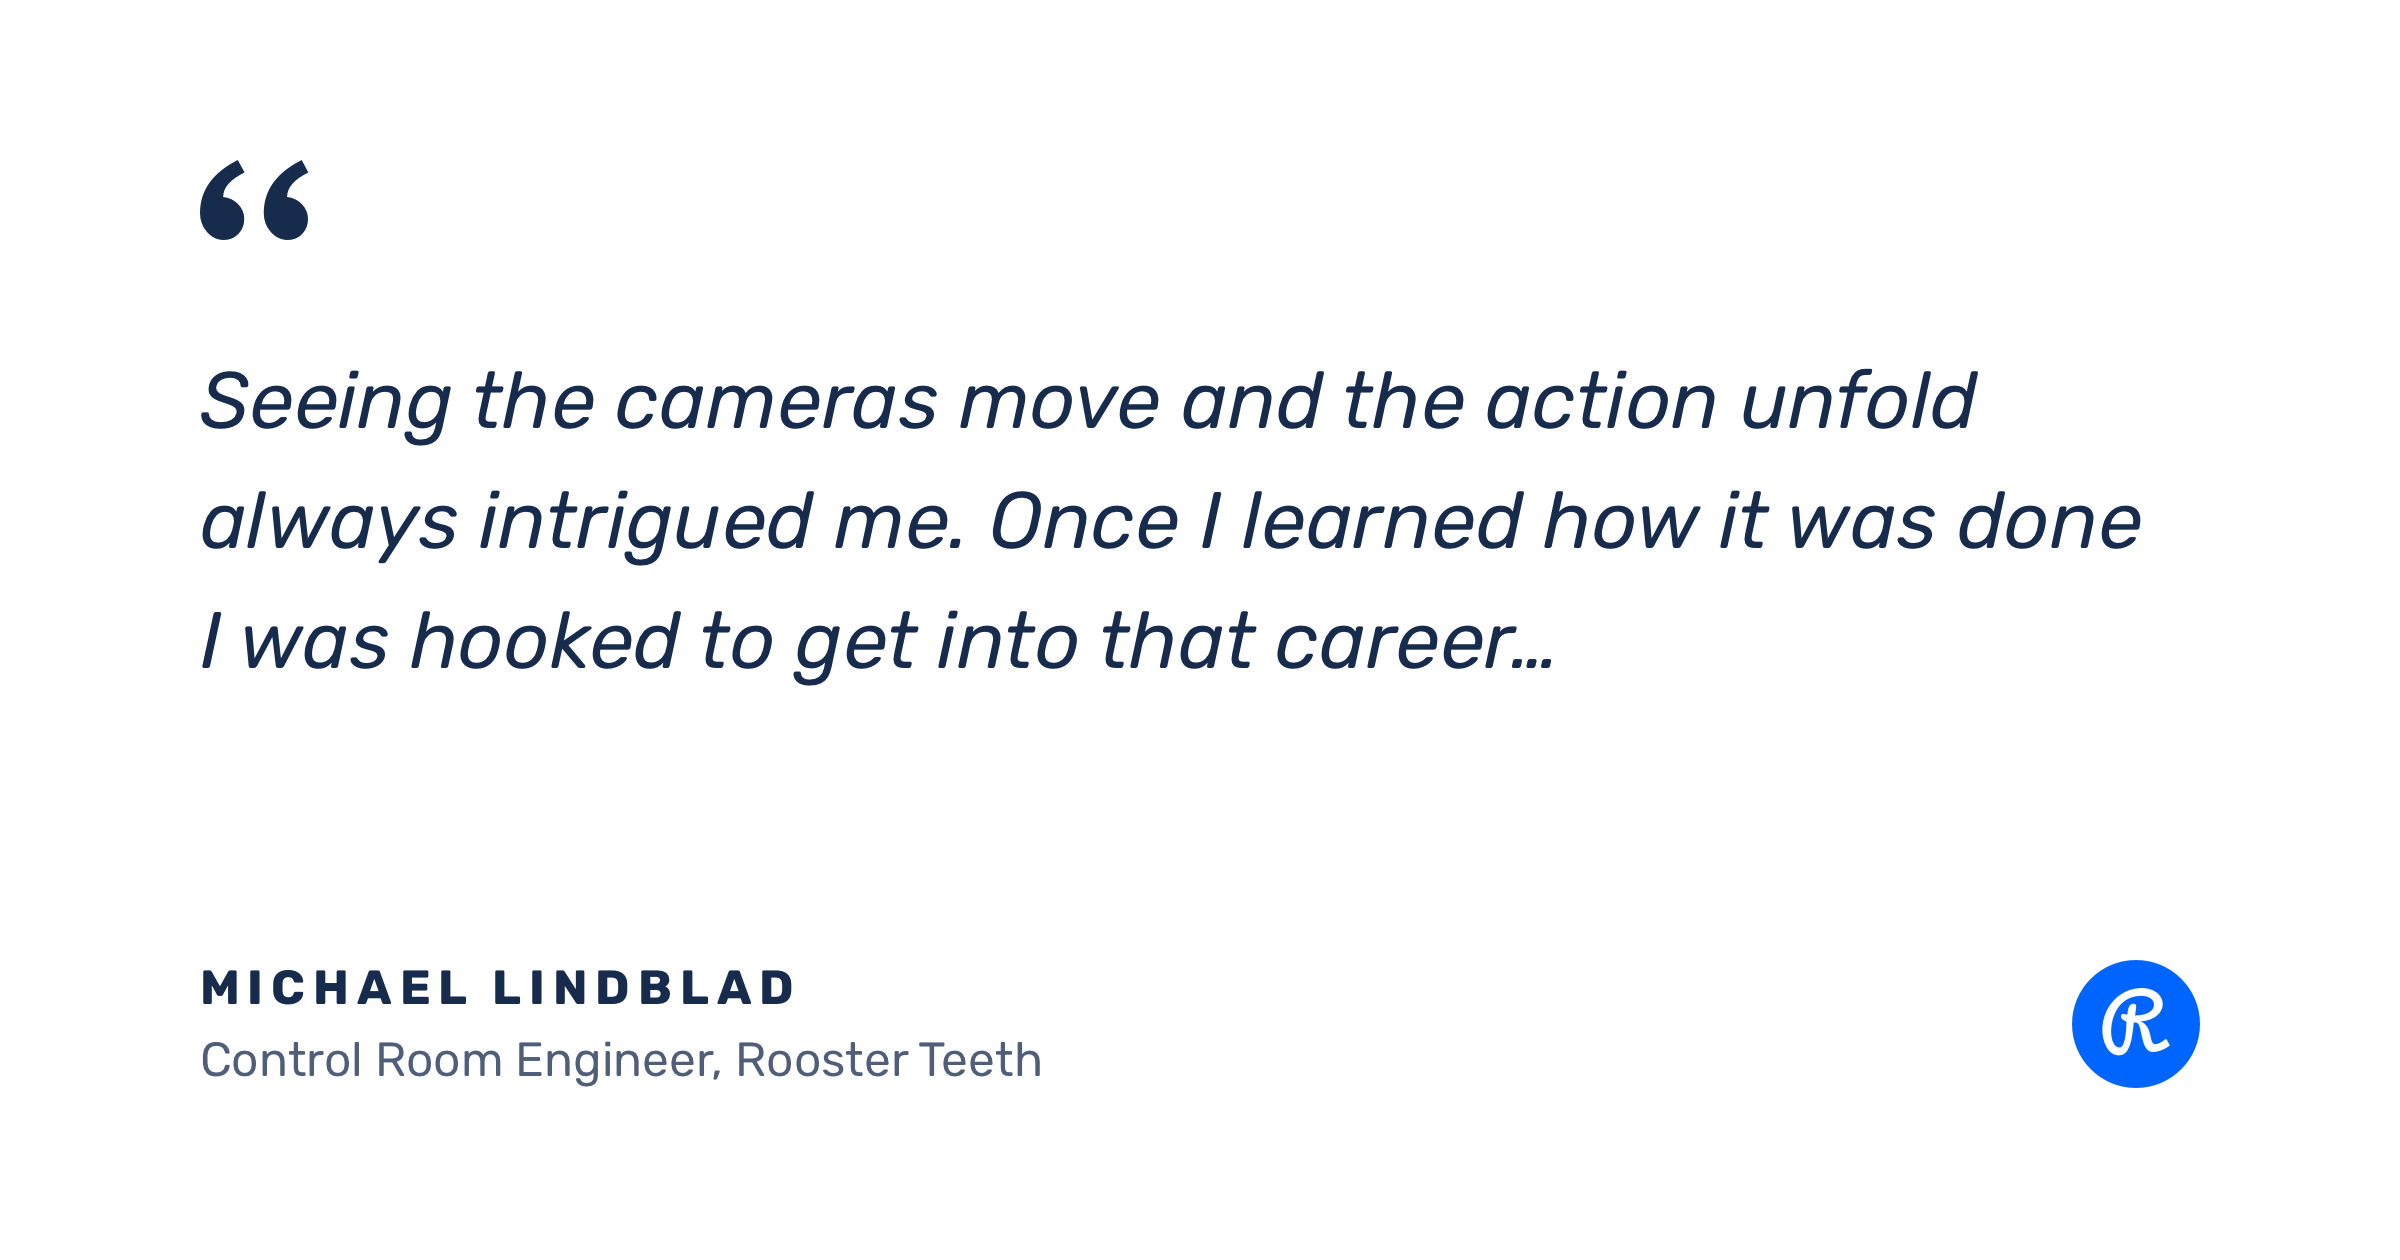 Quote about seeing the cameras move and the action unfold